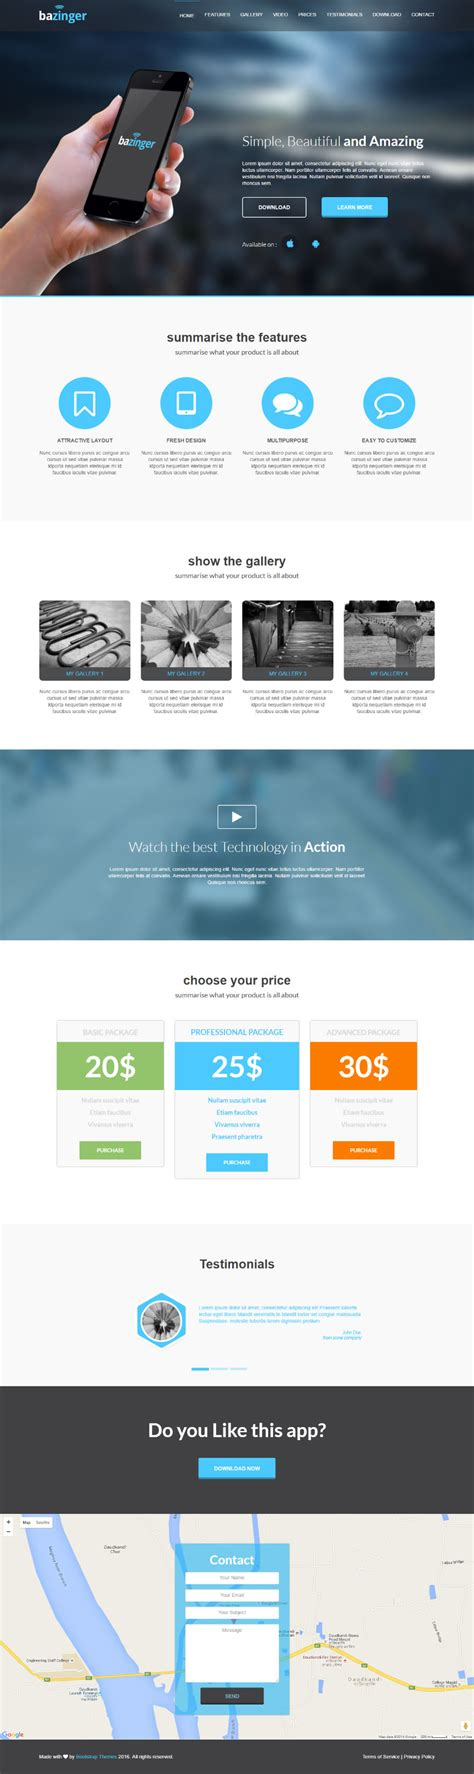 Github Bootstrapthemesco Bazinger Landing Page Template Amazing Is Fully Featured With One Dreamweaver Landing Page Template